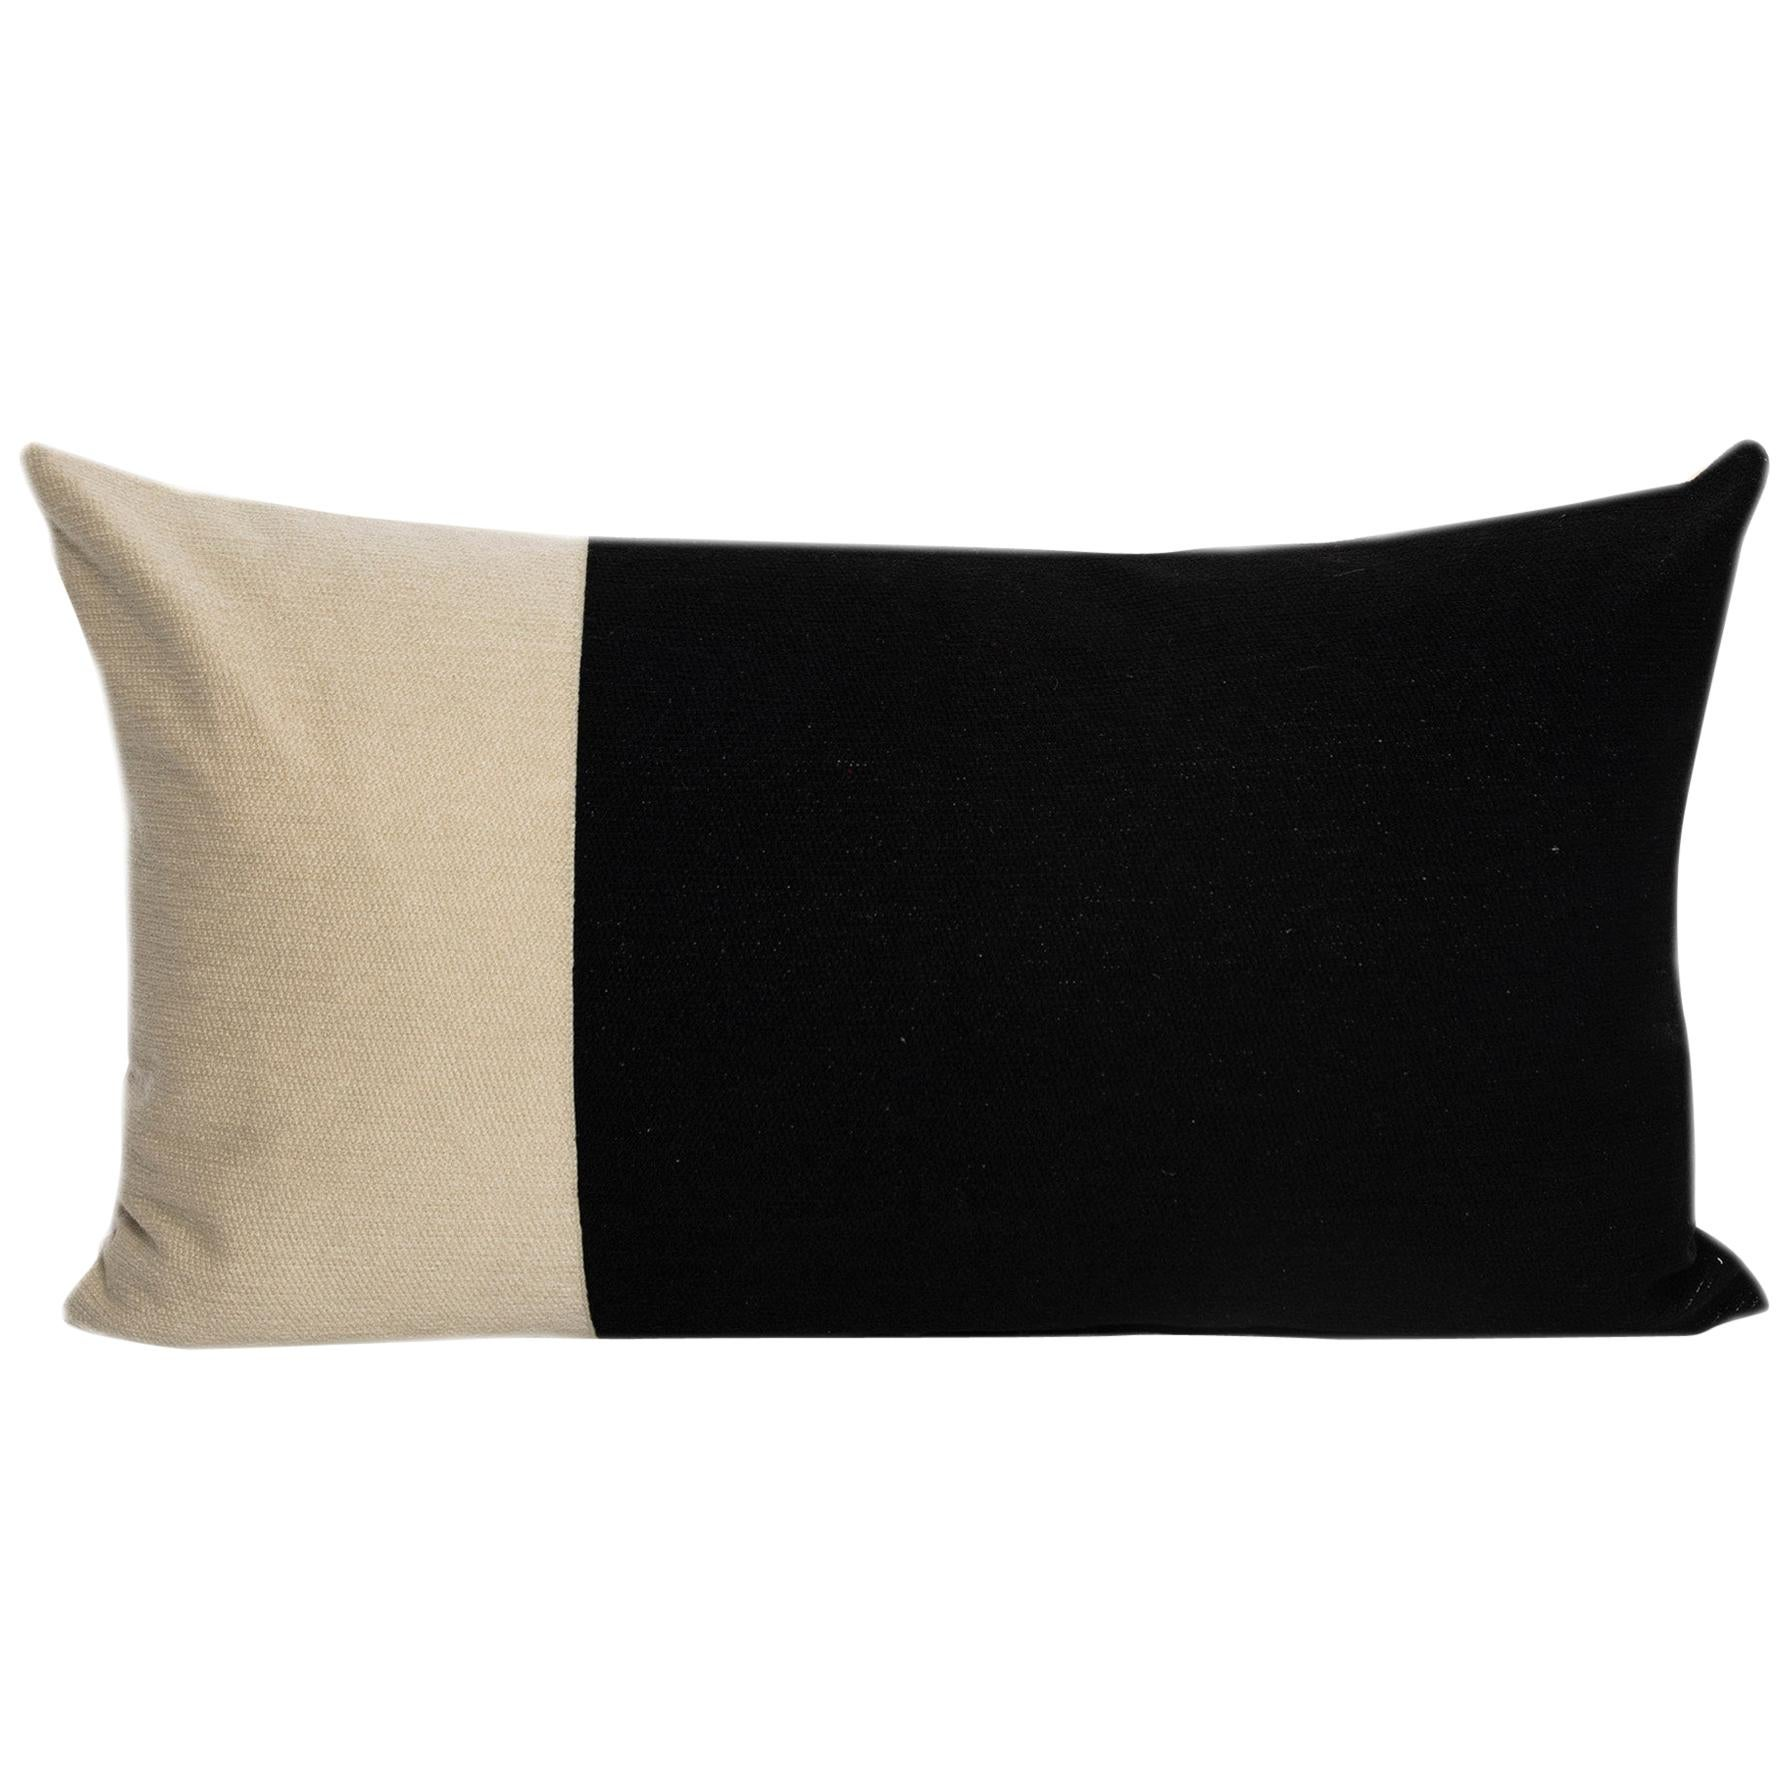 Modern Kilombo Home Embroidery Pillow Cotton Bee Black&Beige